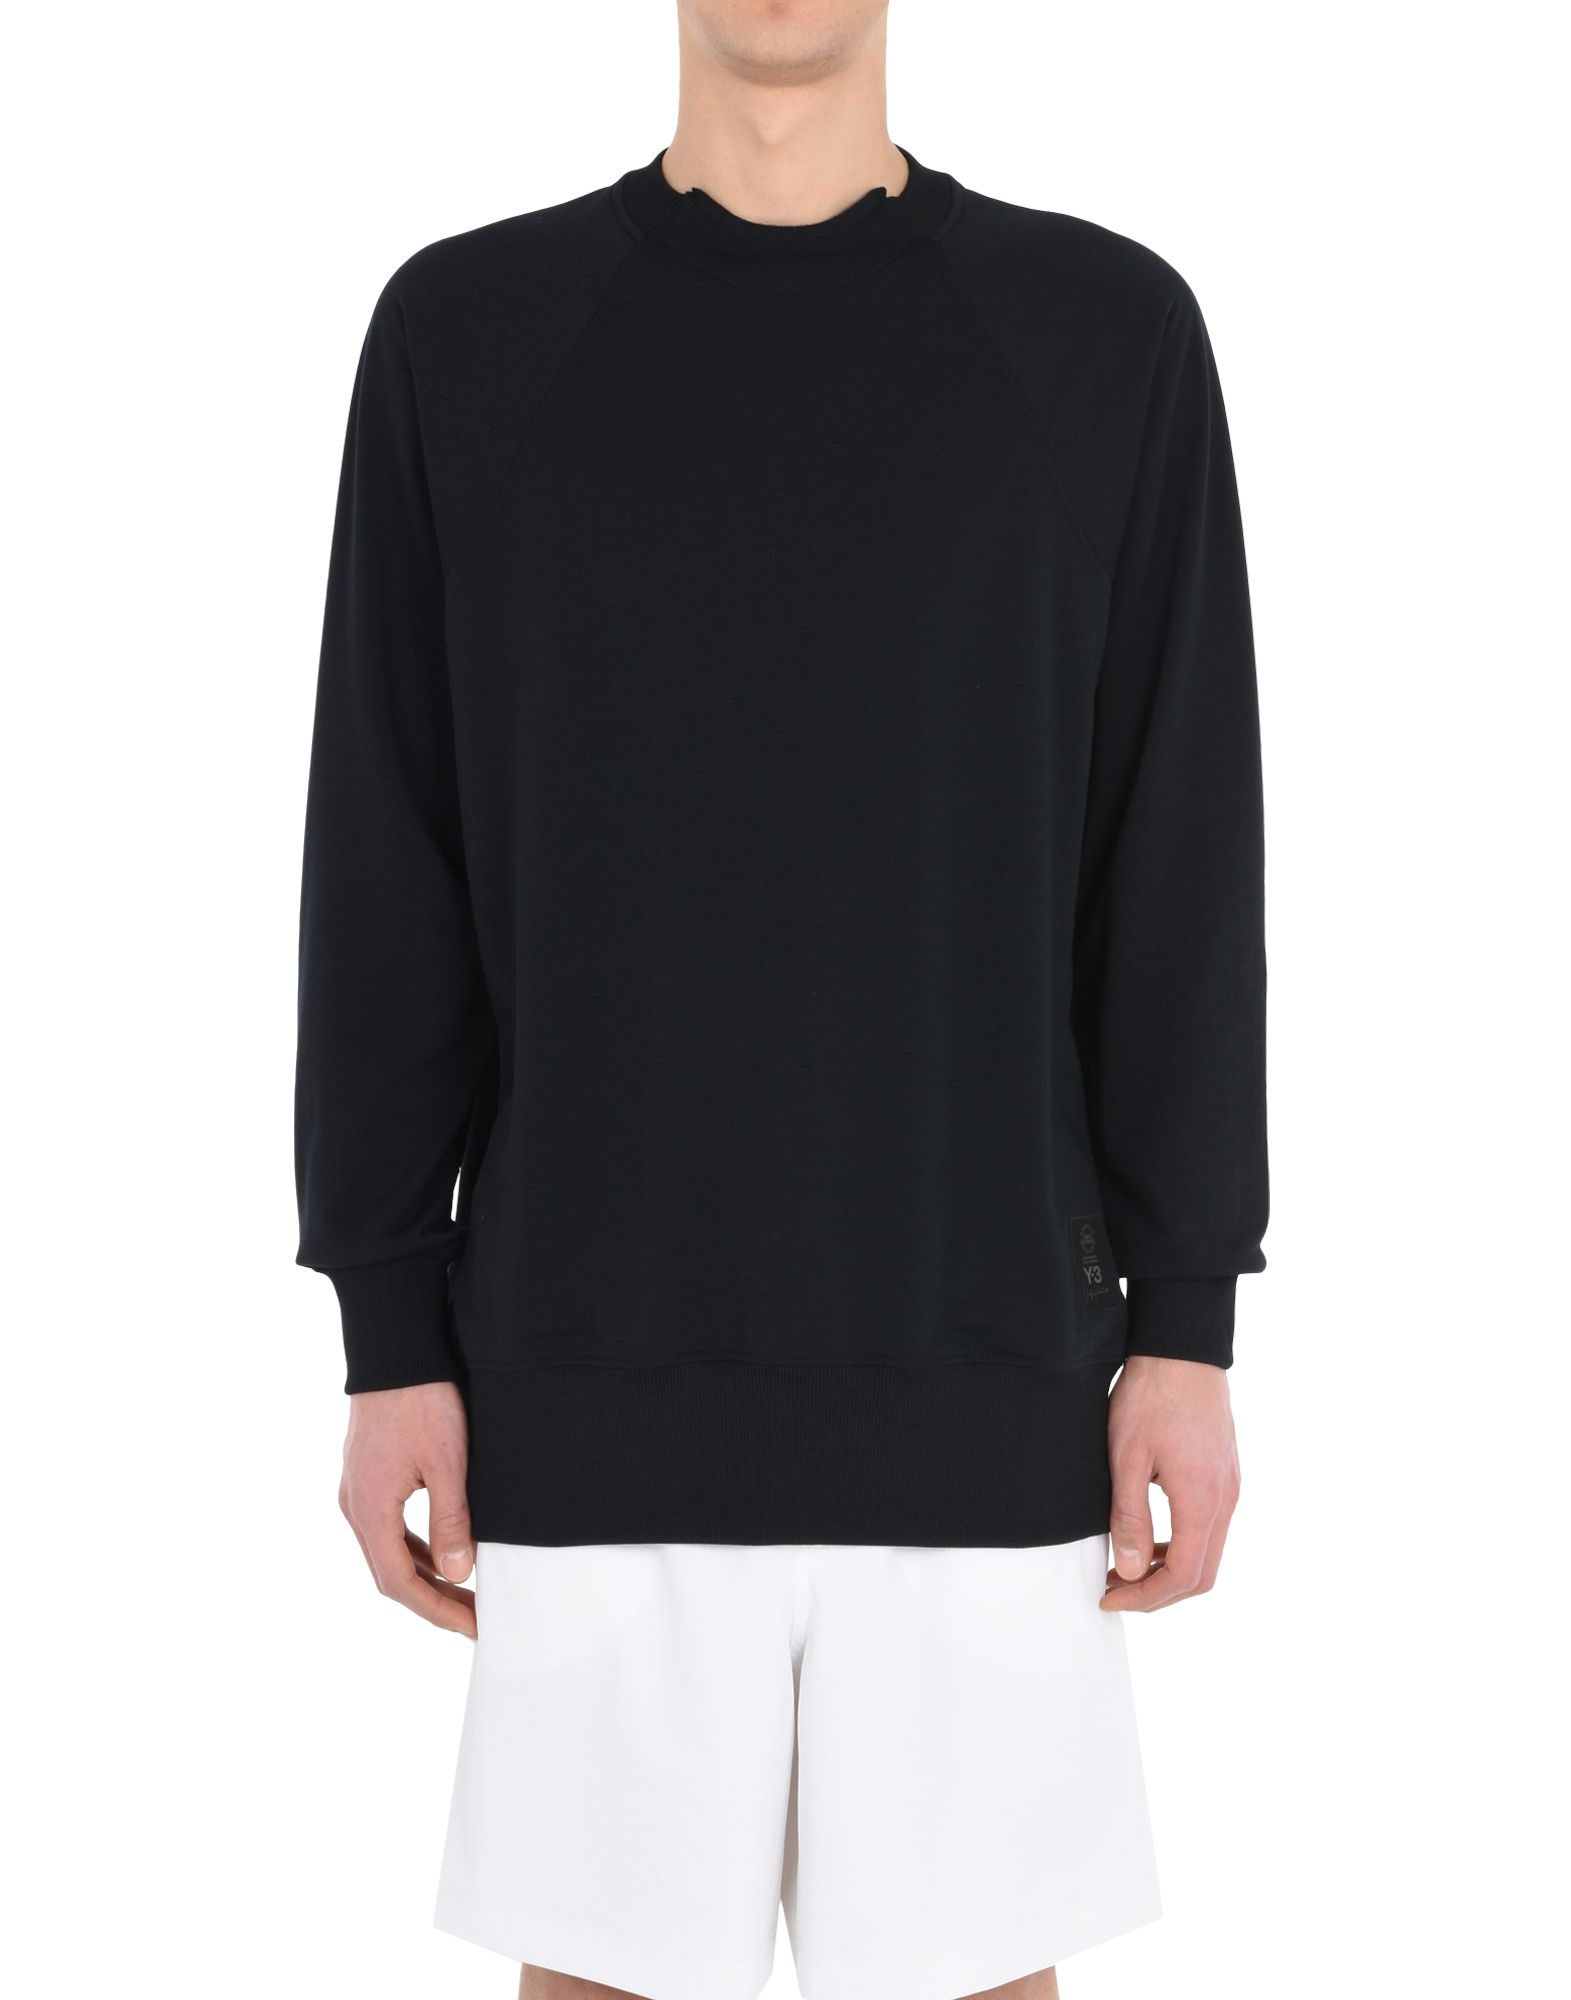 Y-3 Y-3 FRENCH TERRY SWEATER Sweatshirt Man d